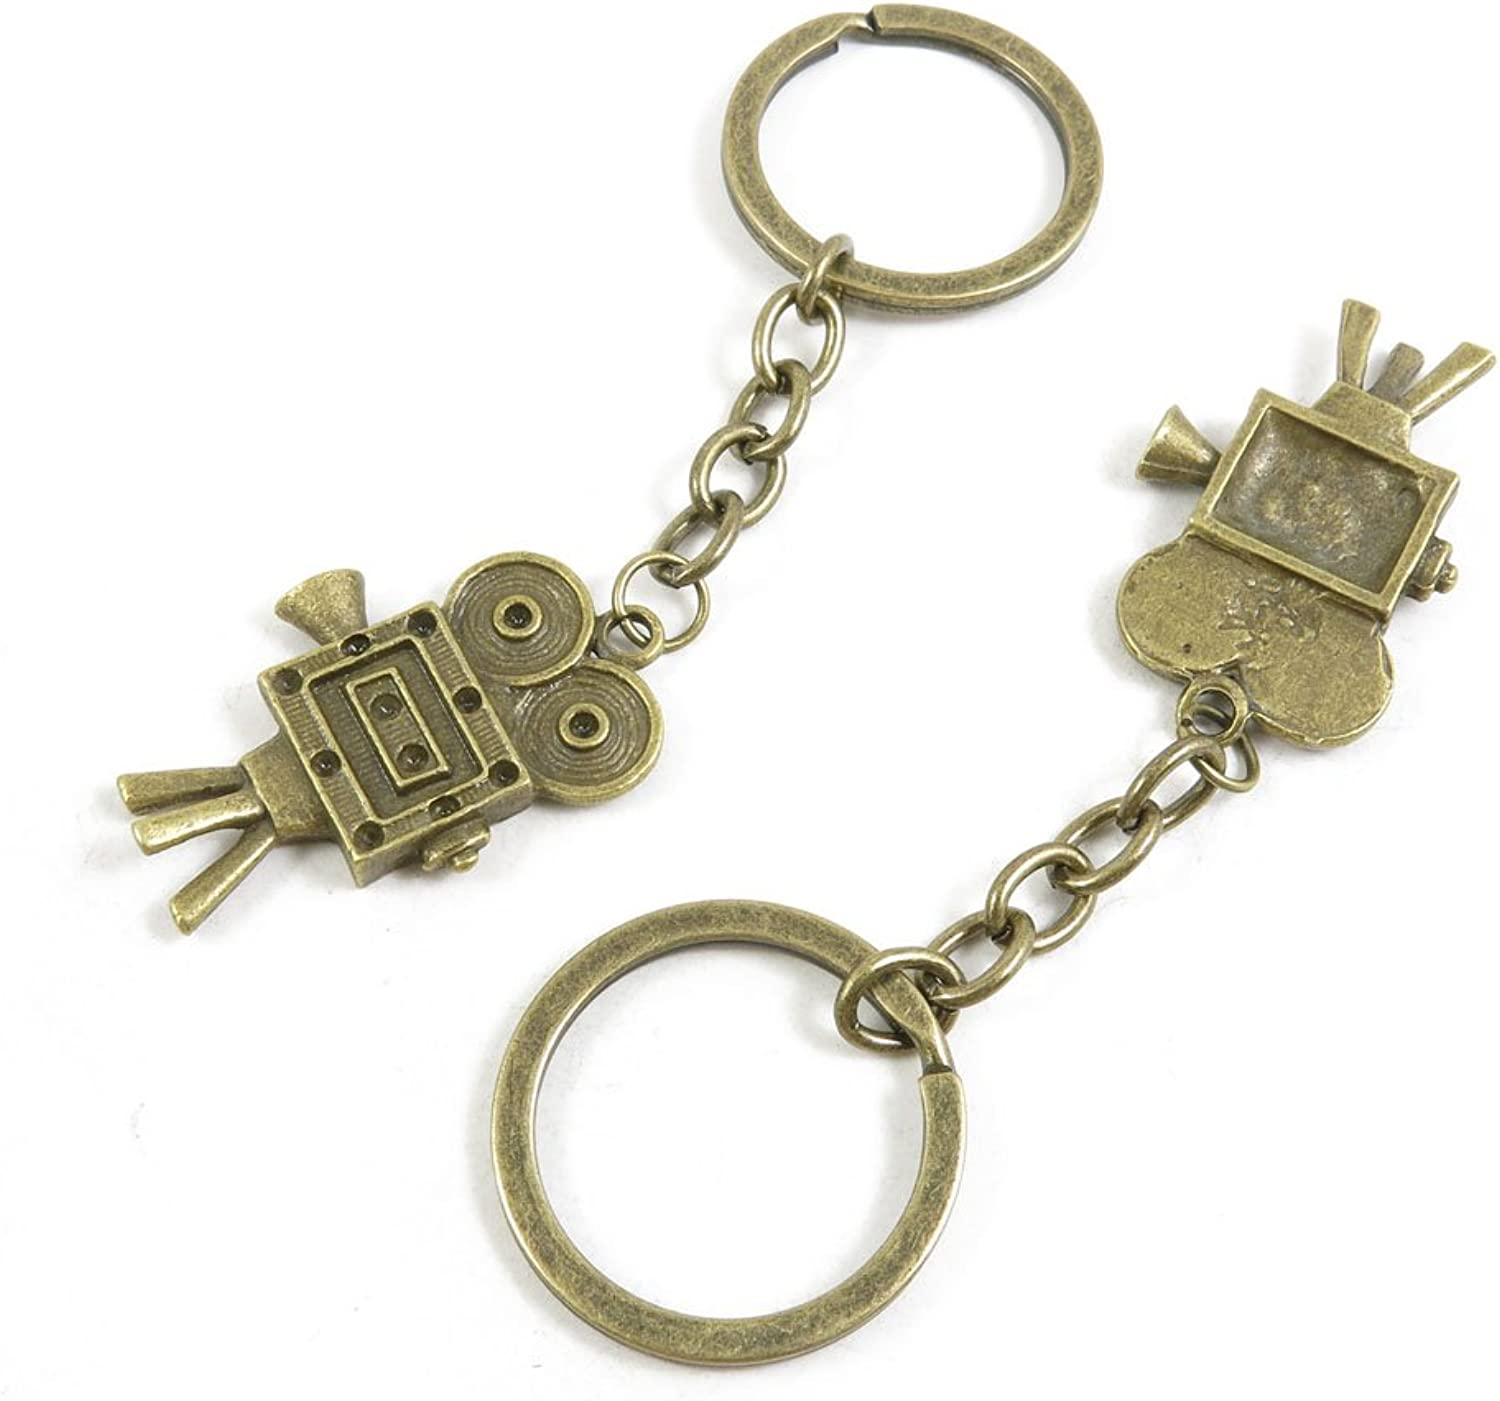 120 Pieces Fashion Jewelry Keyring Keychain Door Car Key Tag Ring Chain Supplier Supply Wholesale Bulk Lots T2UQ6 Vintage Projector